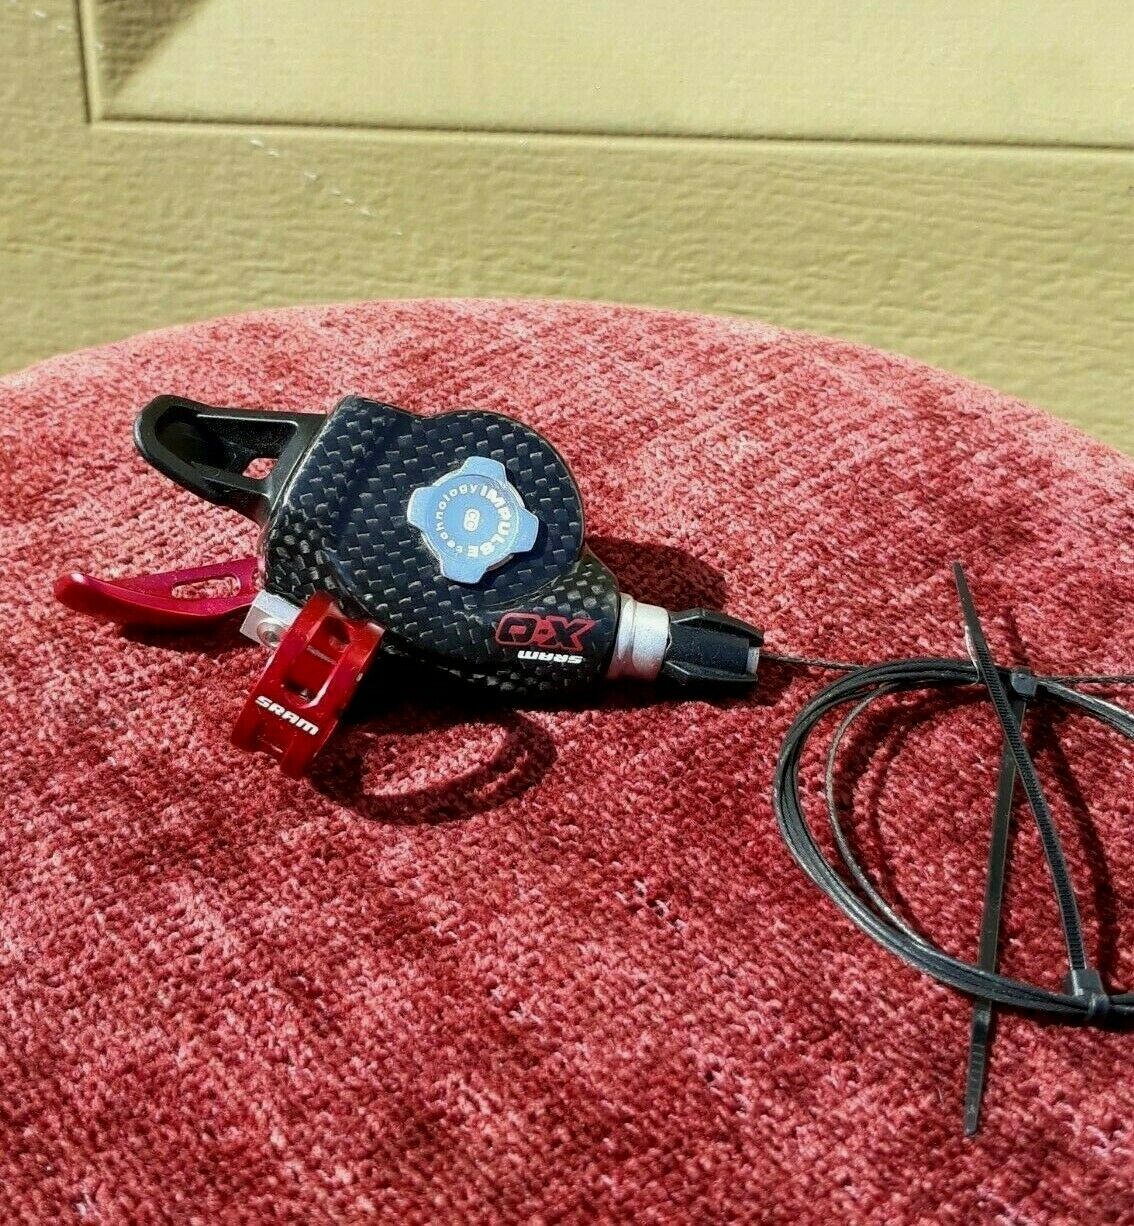 SRAM XO 2  Speed Left Front Shifter Trigger Anodized Red Carbon Rare 29er 125g  reasonable price